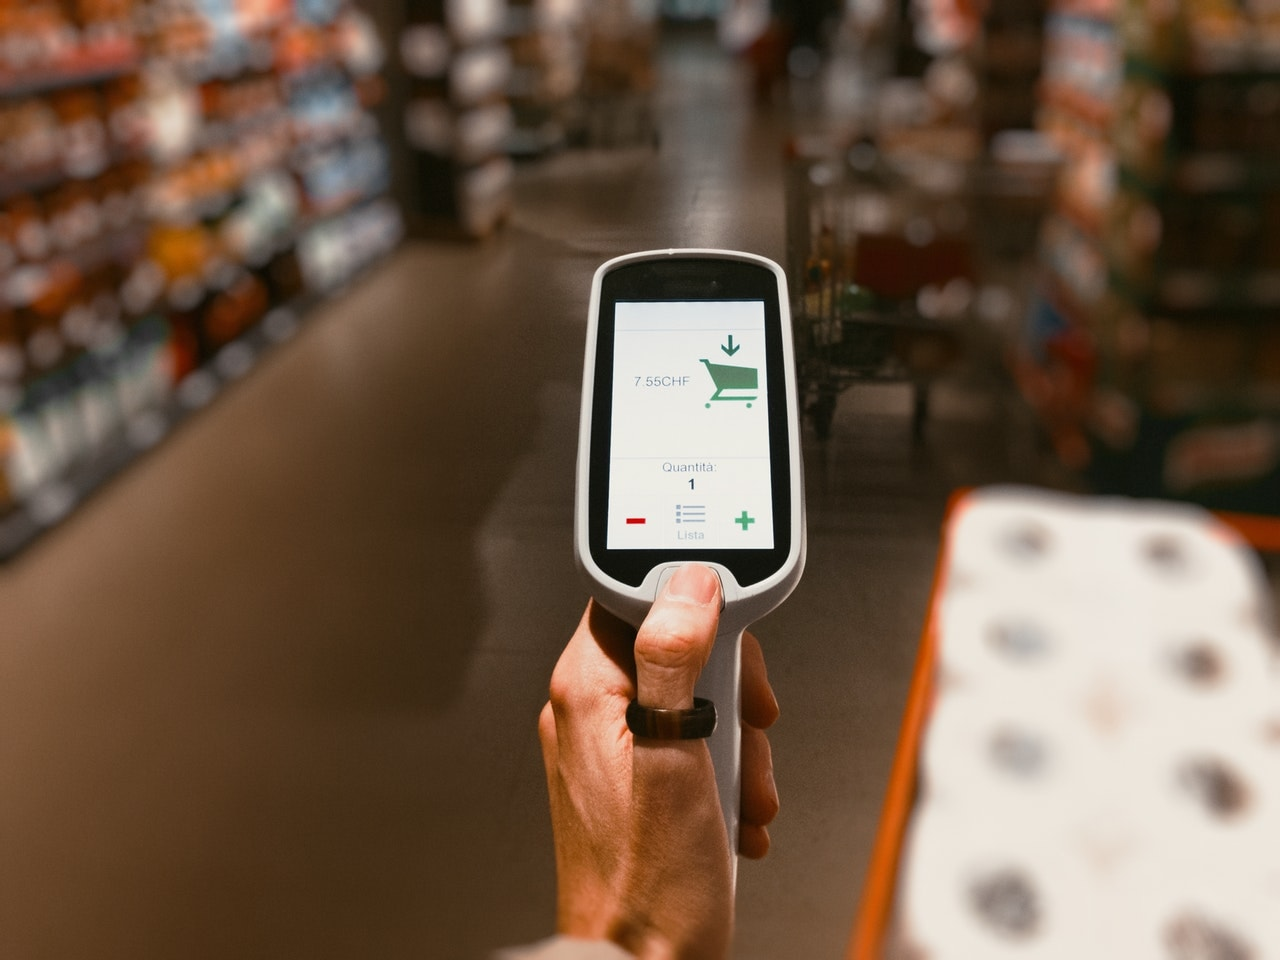 Barcode scanner on grocery store